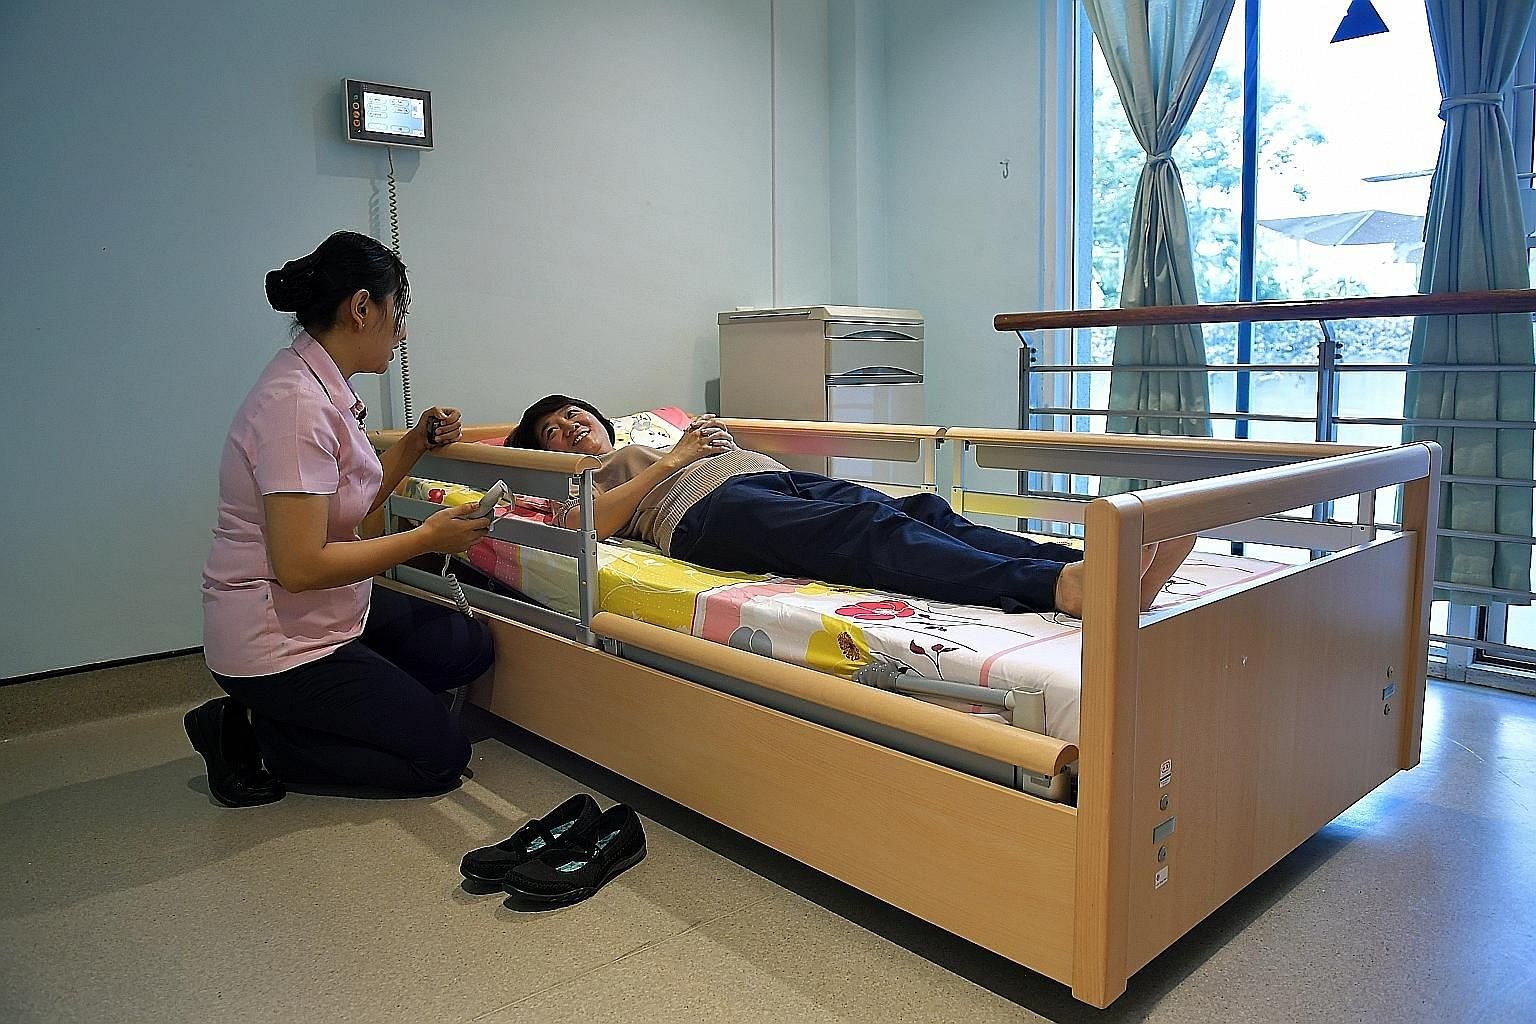 Senior staff nurse Khin Phone Tint, 33, showing how low the new nursing home's bed can go. The bed is designed to prevent a user from getting hurt if he or she falls out of it.